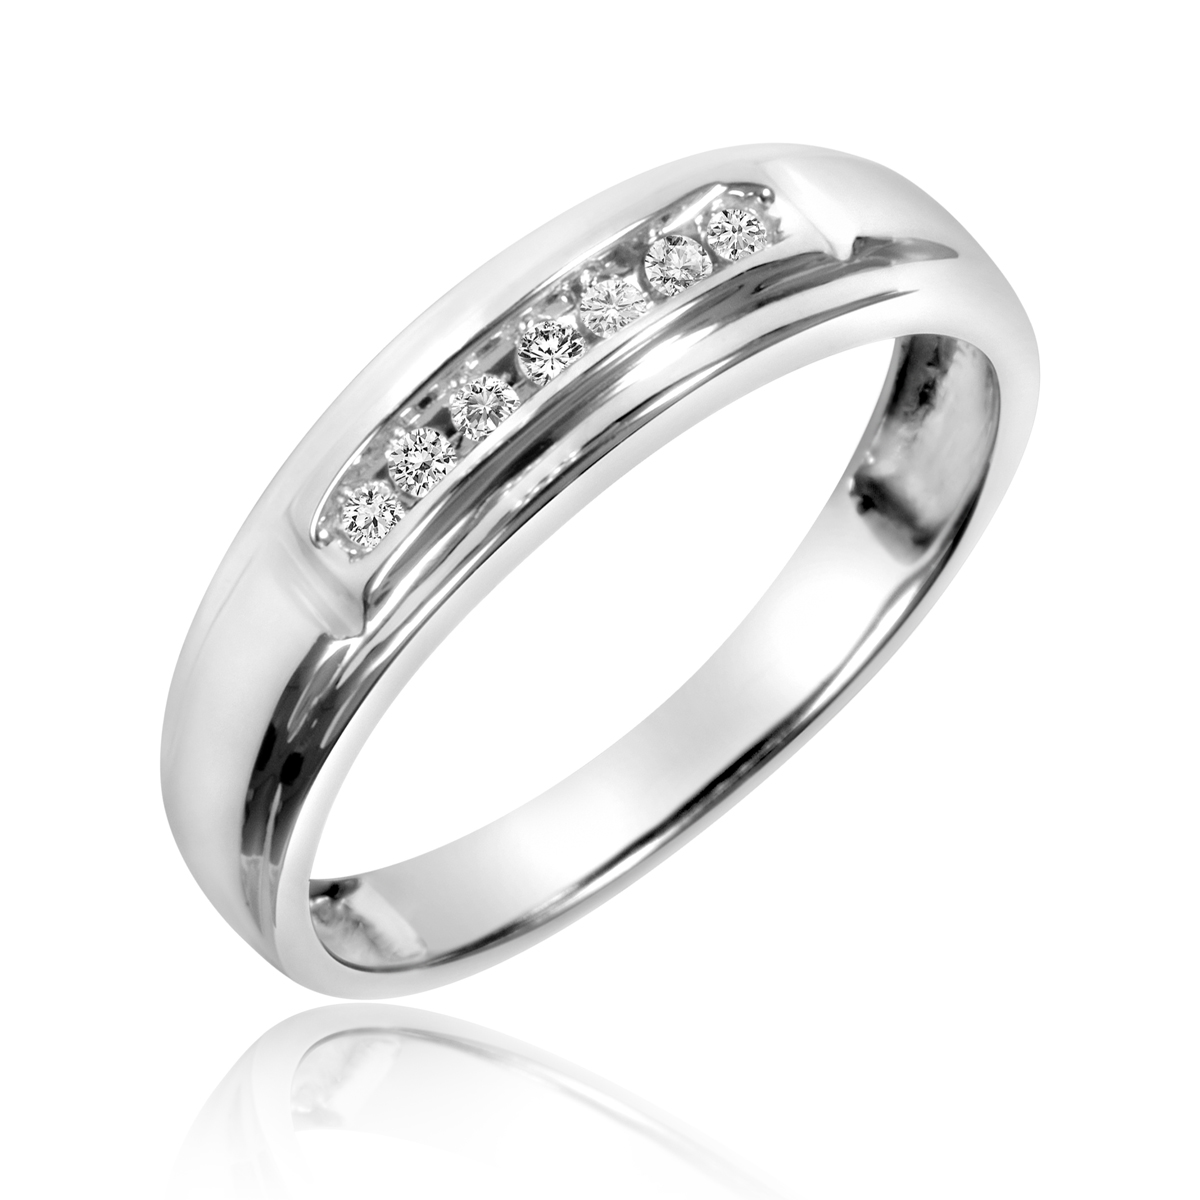 tw diamond trio matching wedding ring set 10k white gold my trio rings bt518w10k - His And Hers Matching Wedding Rings